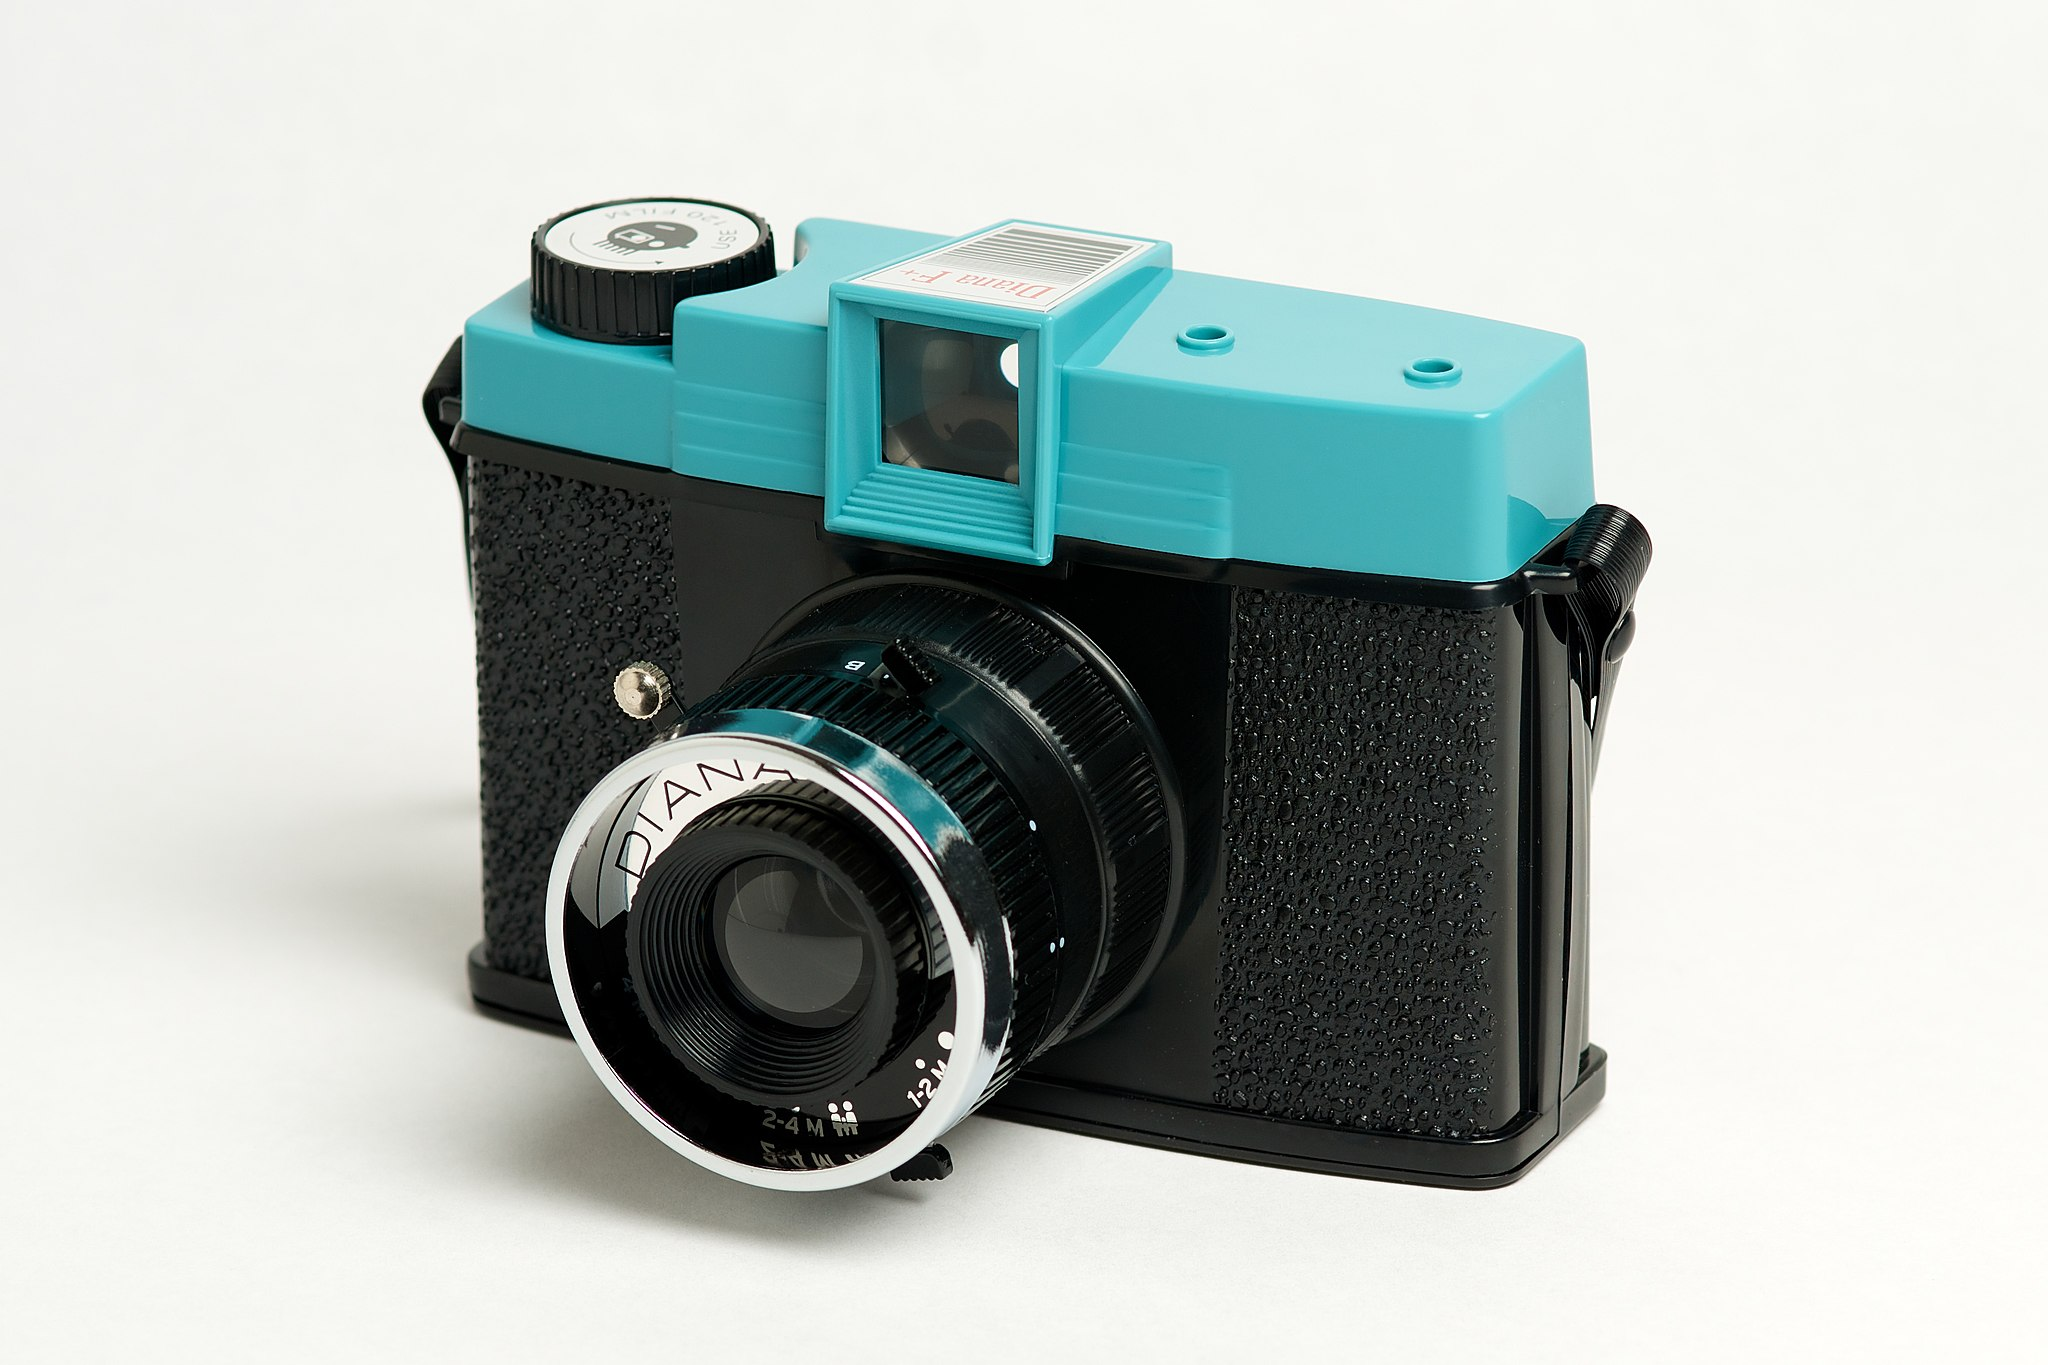 Diana F+ camera (Pic: Siam Thanachai/Wikiemdia Commons)